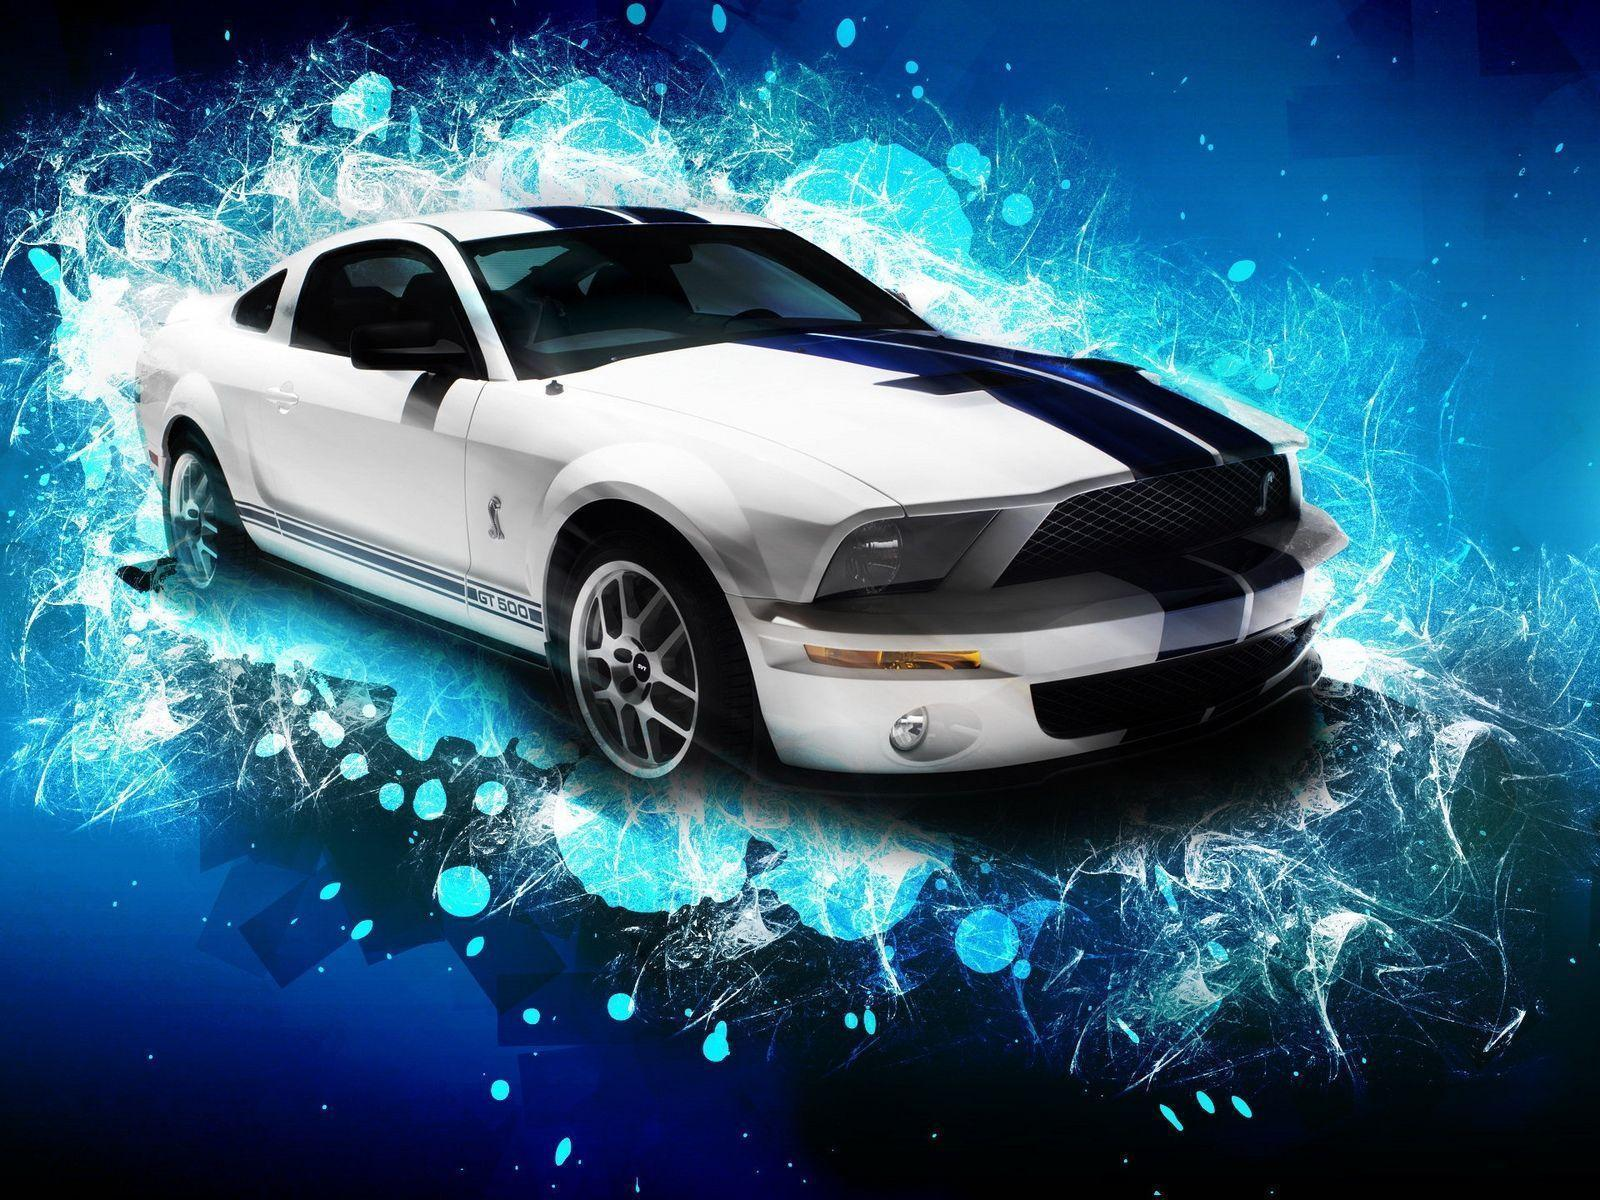 Sport Cars Hd Wallpapers | Free Desk Wallpapers